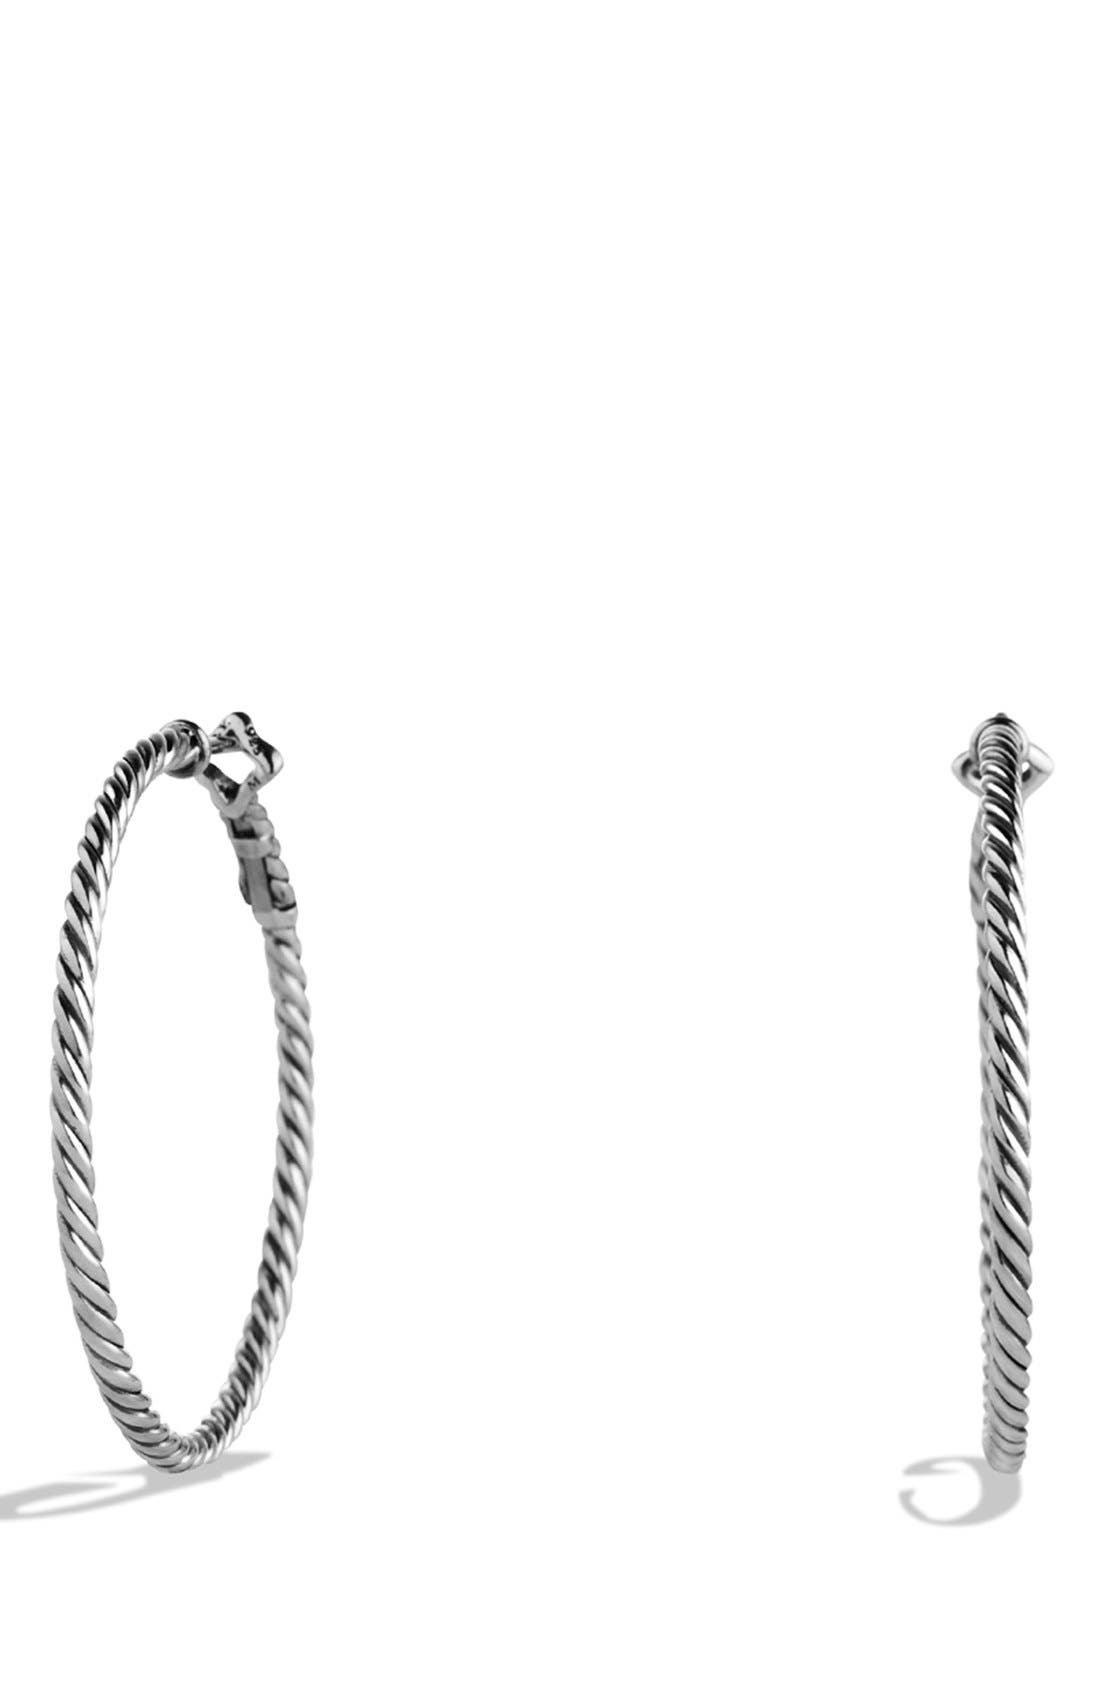 Cable Classics Hoop Earrings,                         Main,                         color, SILVER